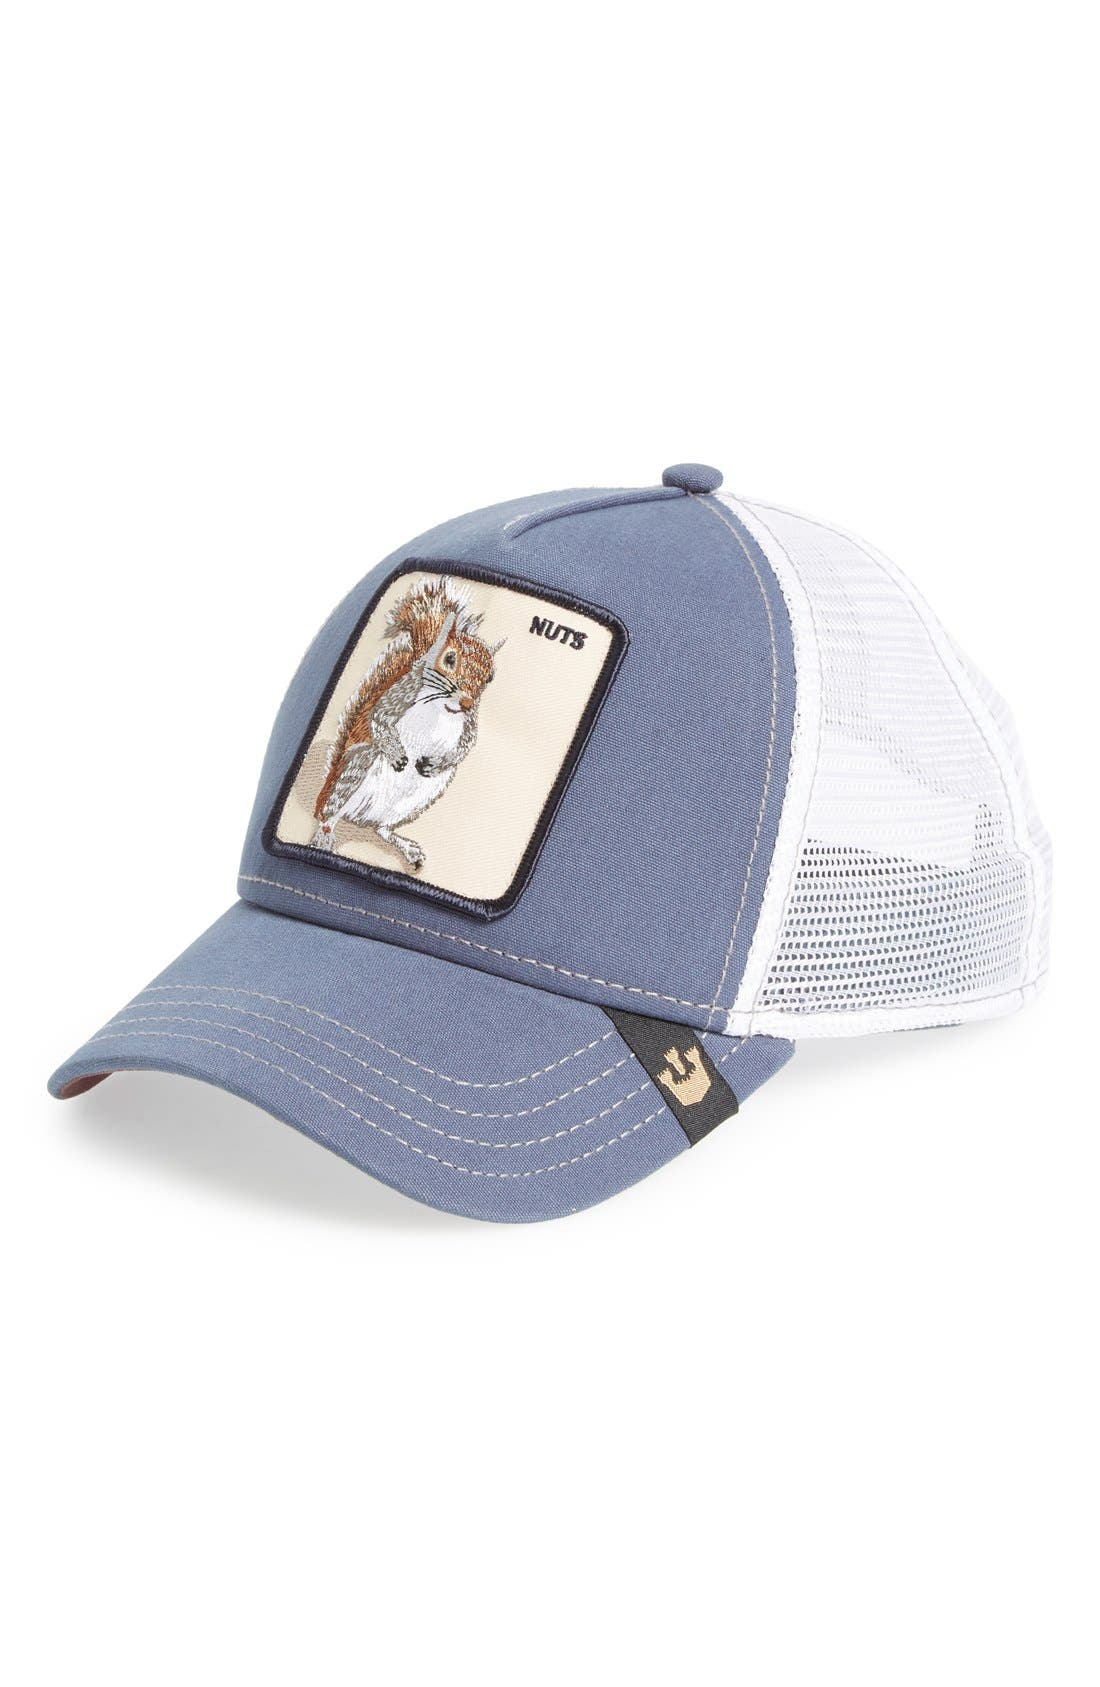 Main Image - Goorin Brothers 'Nutty' Trucker Hat